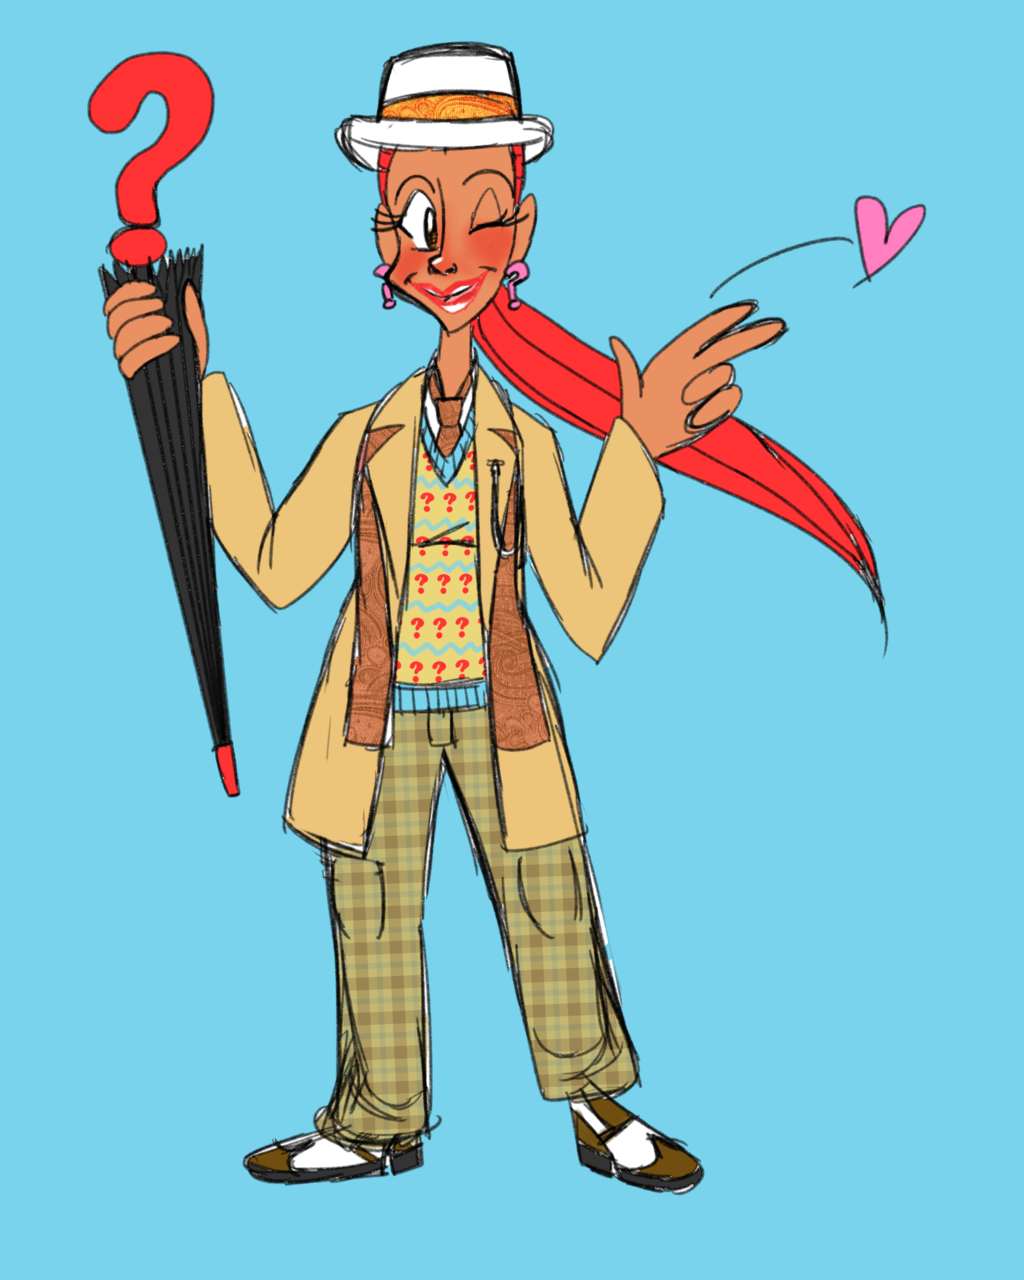 Most recent image: Mth Doctor in 7ths Clothes